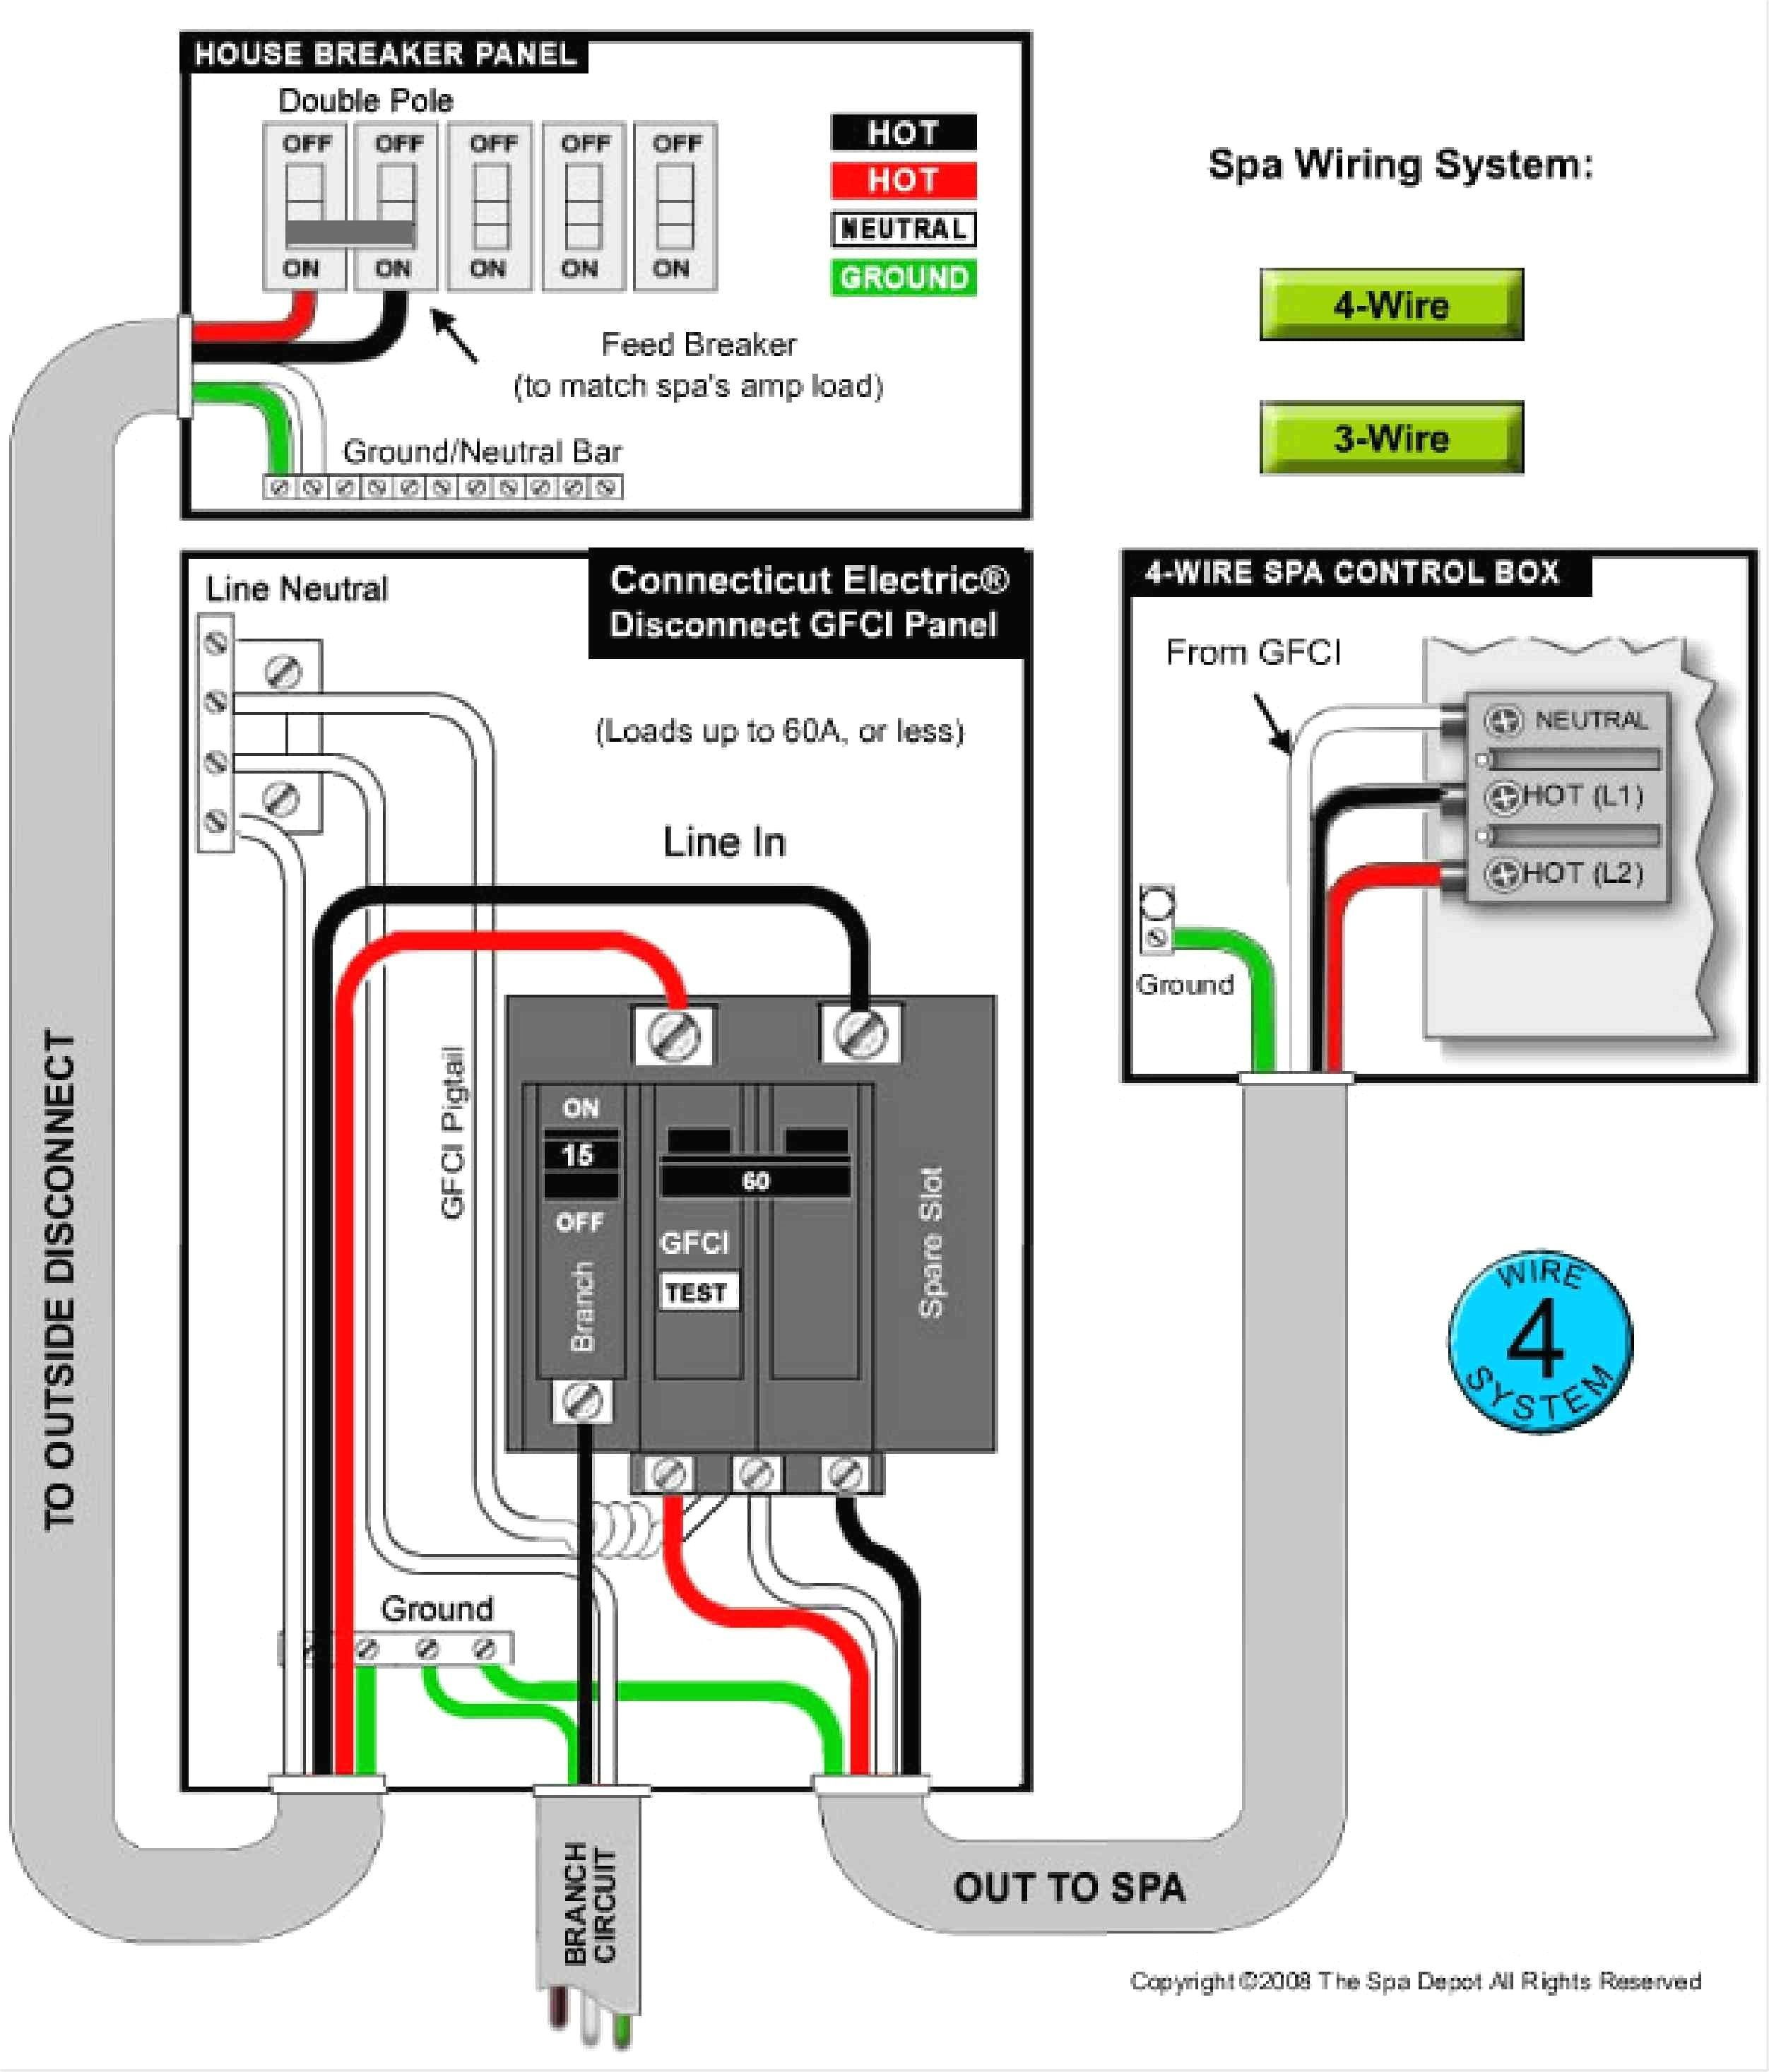 New Electrical Control Panel Wiring Diagram Diagram Wiringdiagram Diagramming Diagramm Visuals Visualisatio Hot Tub Delivery Gfci Electrical Panel Wiring